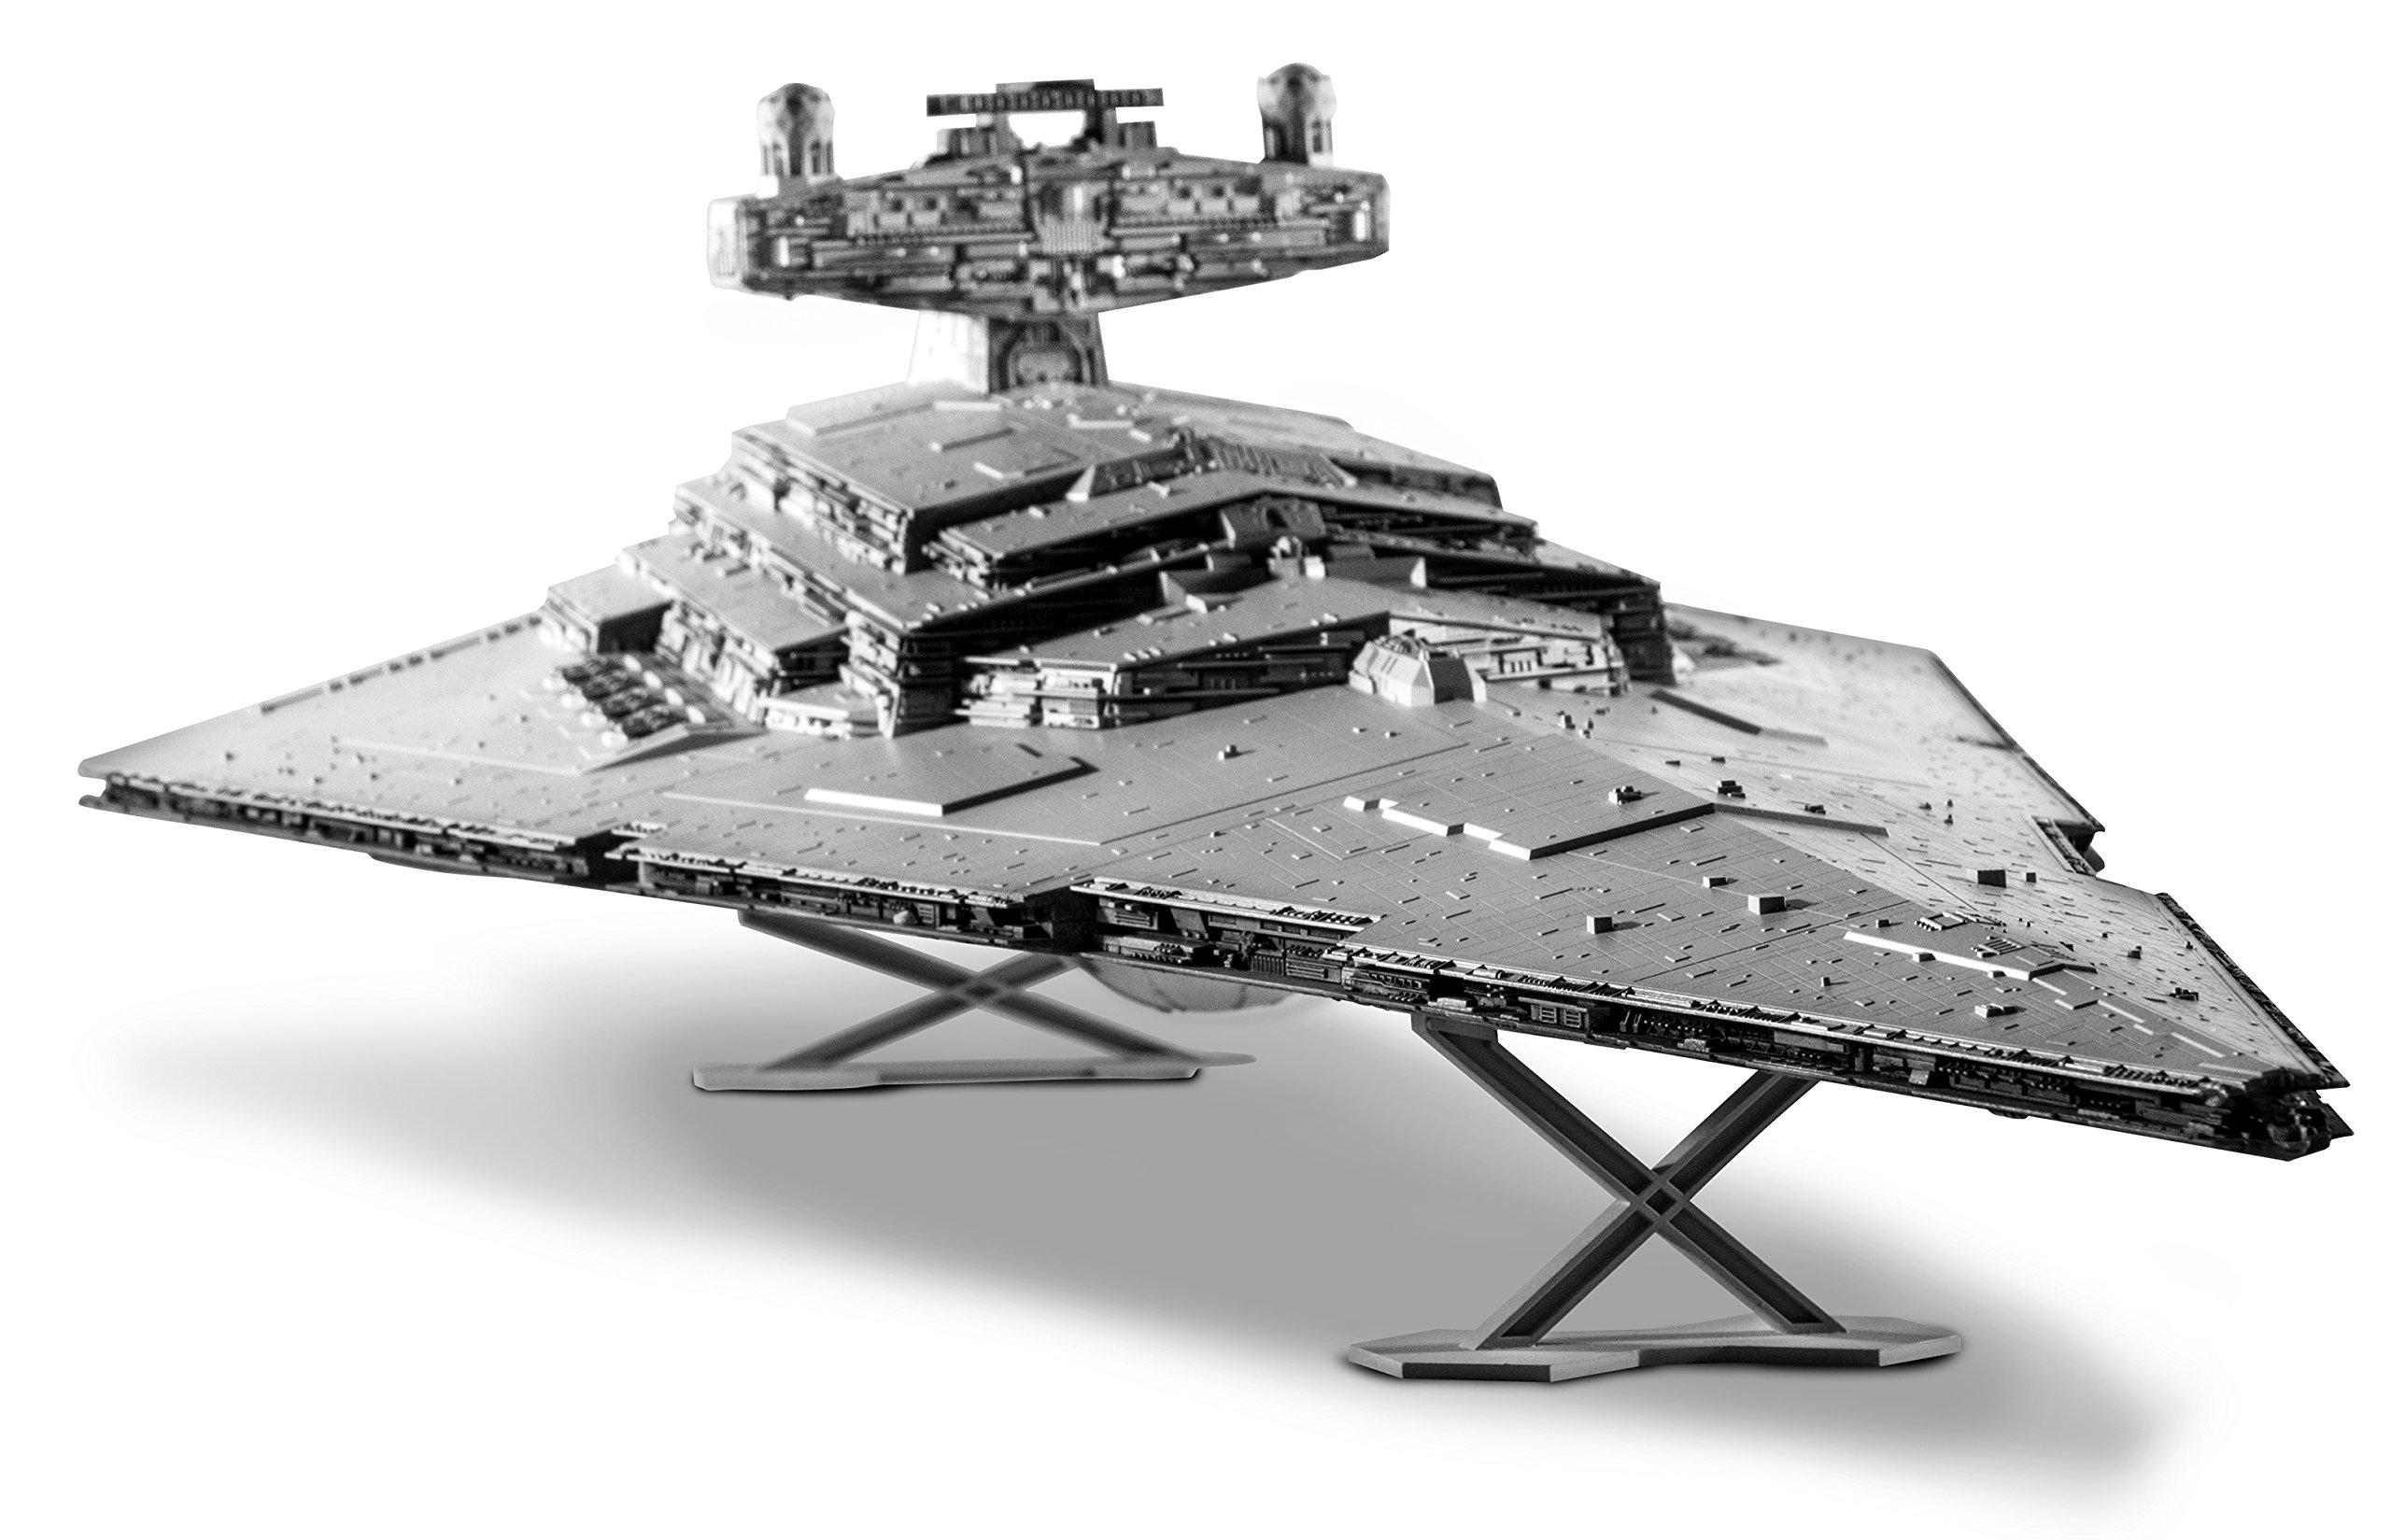 Galleon - Revell Of Germany Star Wars Imperial Star Destroyer